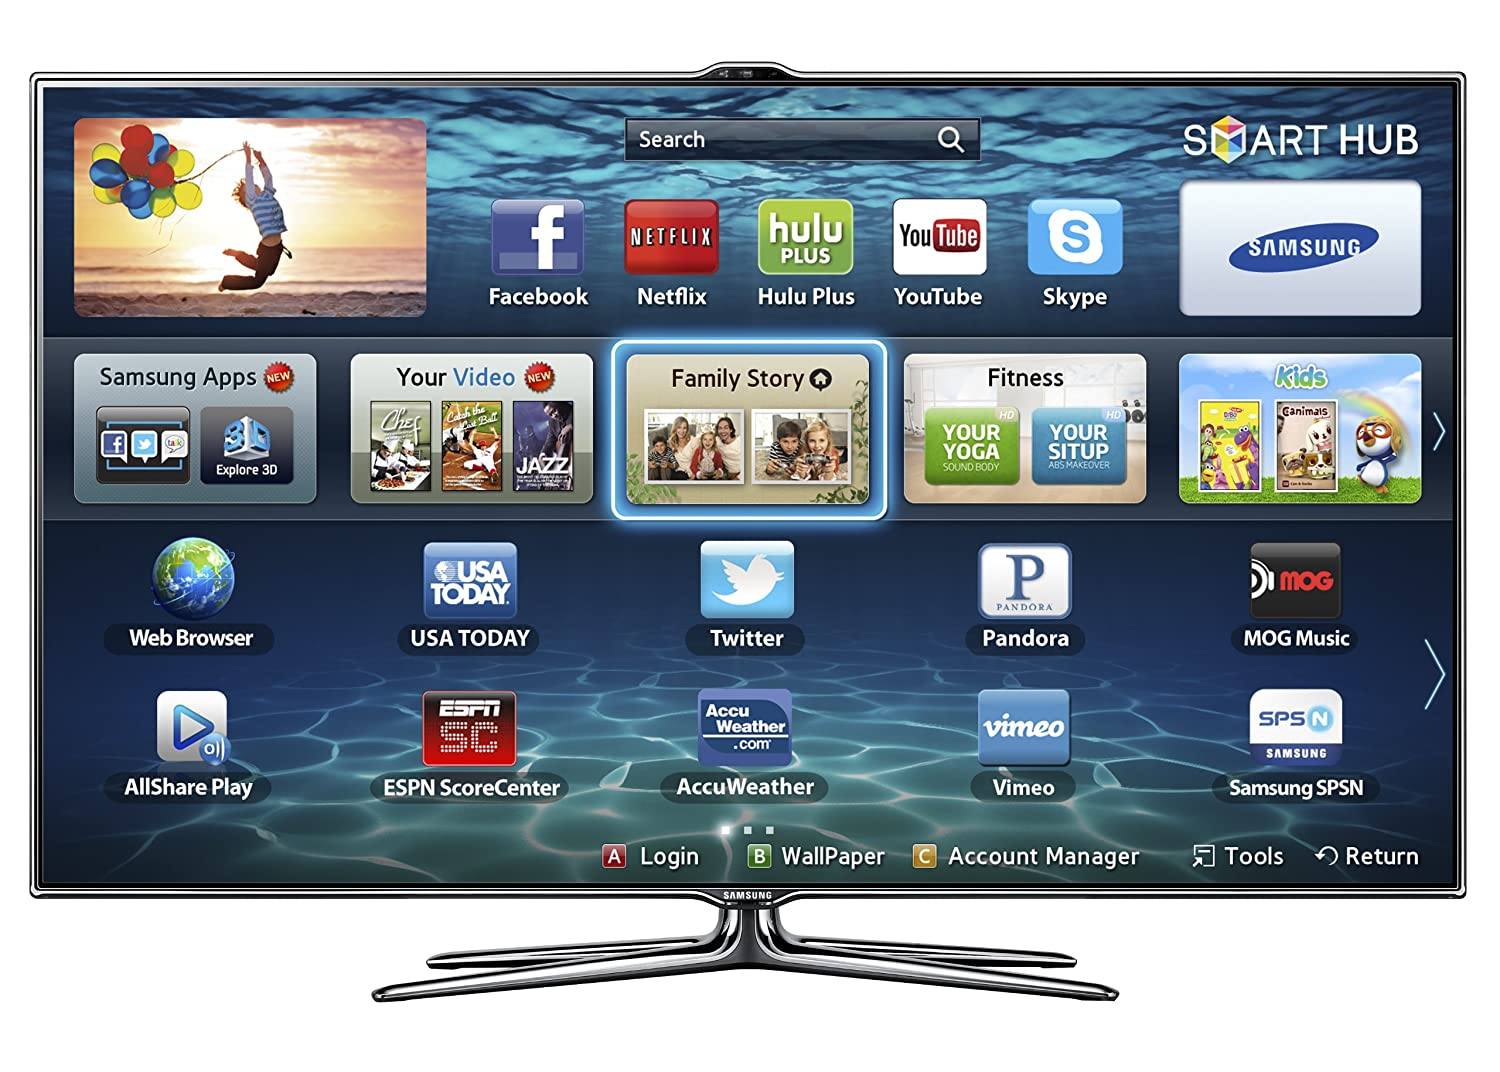 Get a Free Galaxy Tab 2 7-Inch Tablet when Purchased with Select Samsung HDTVs